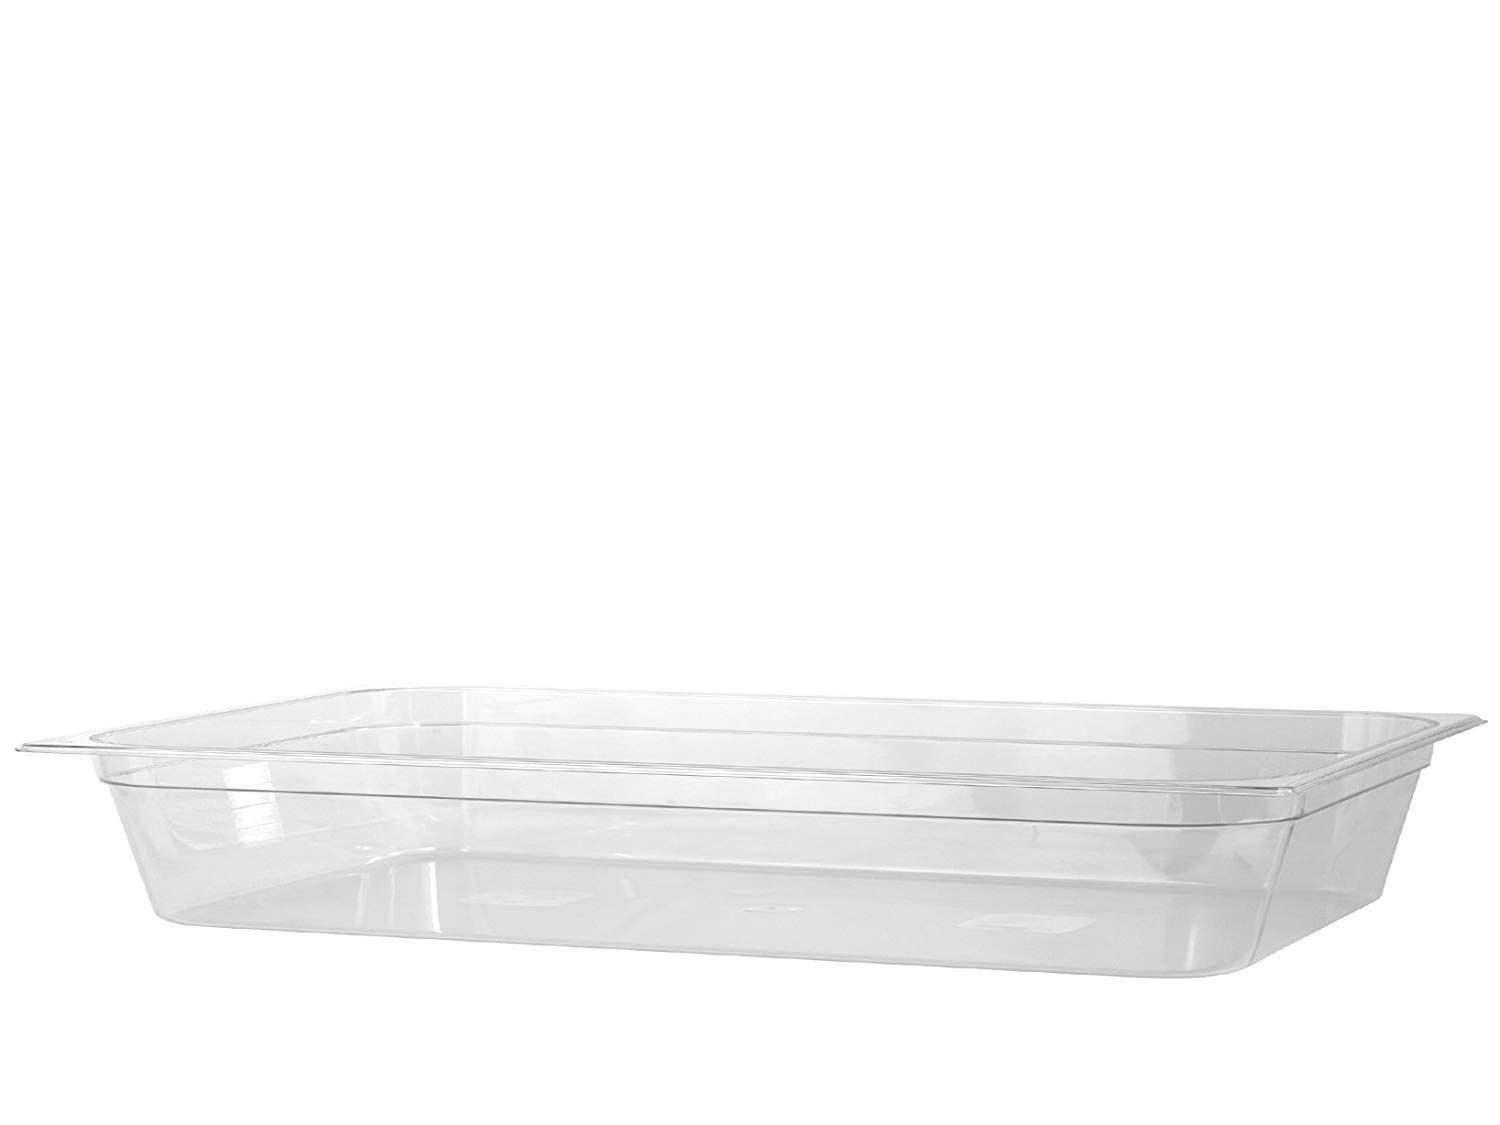 Vogue Stainless Steel 1 1 Gastronorm Pan 65mm K903 Catering Equipment Stainless Steel Food Storage Containers